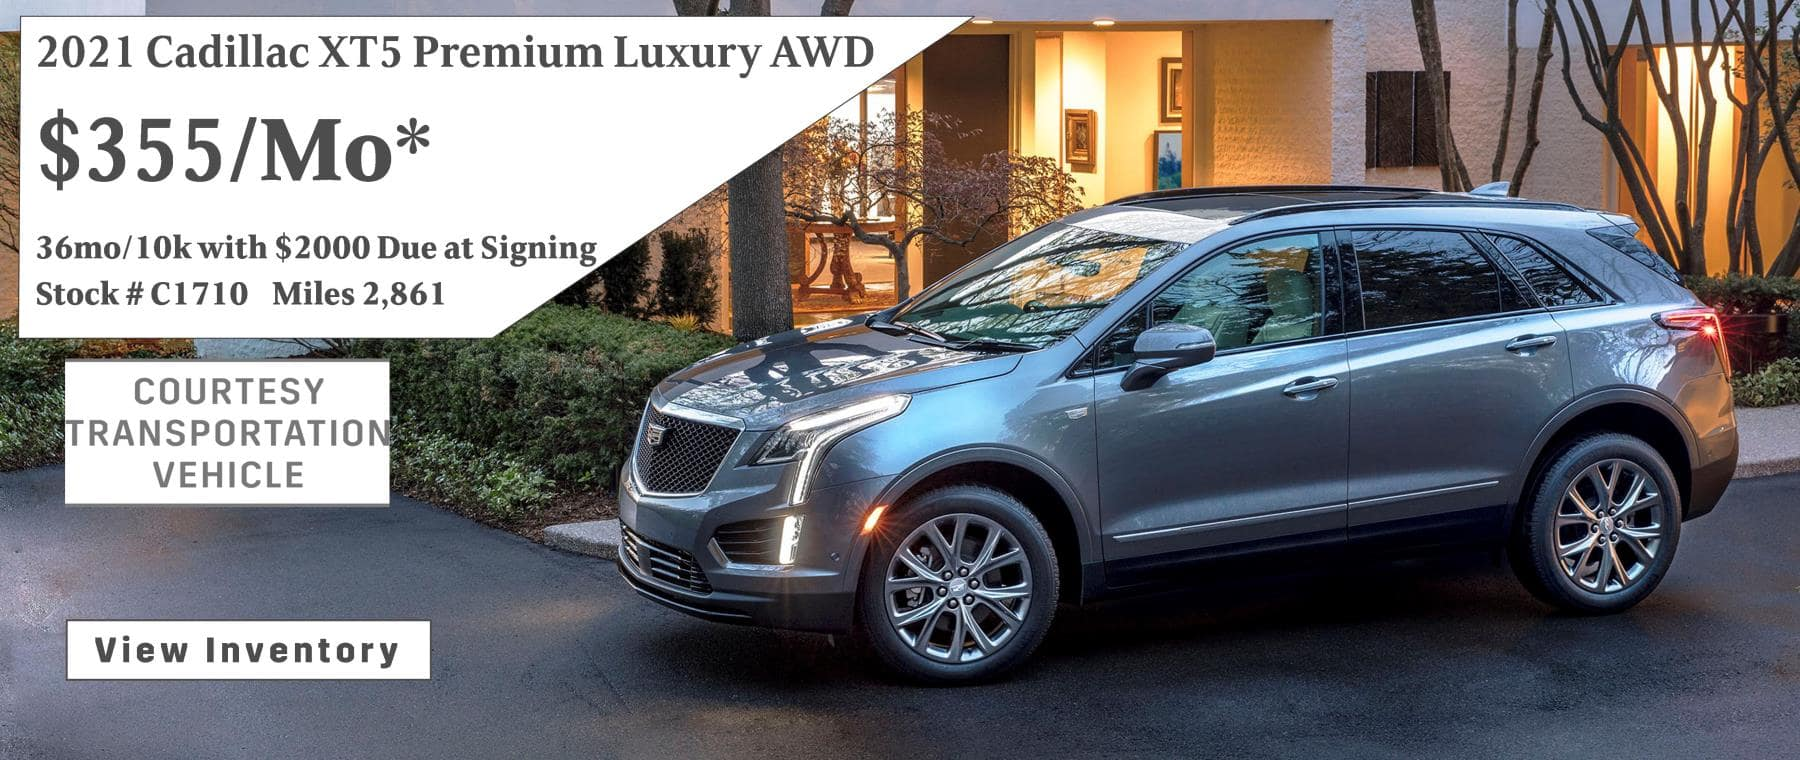 January XT5 Lease Special $355/mo*